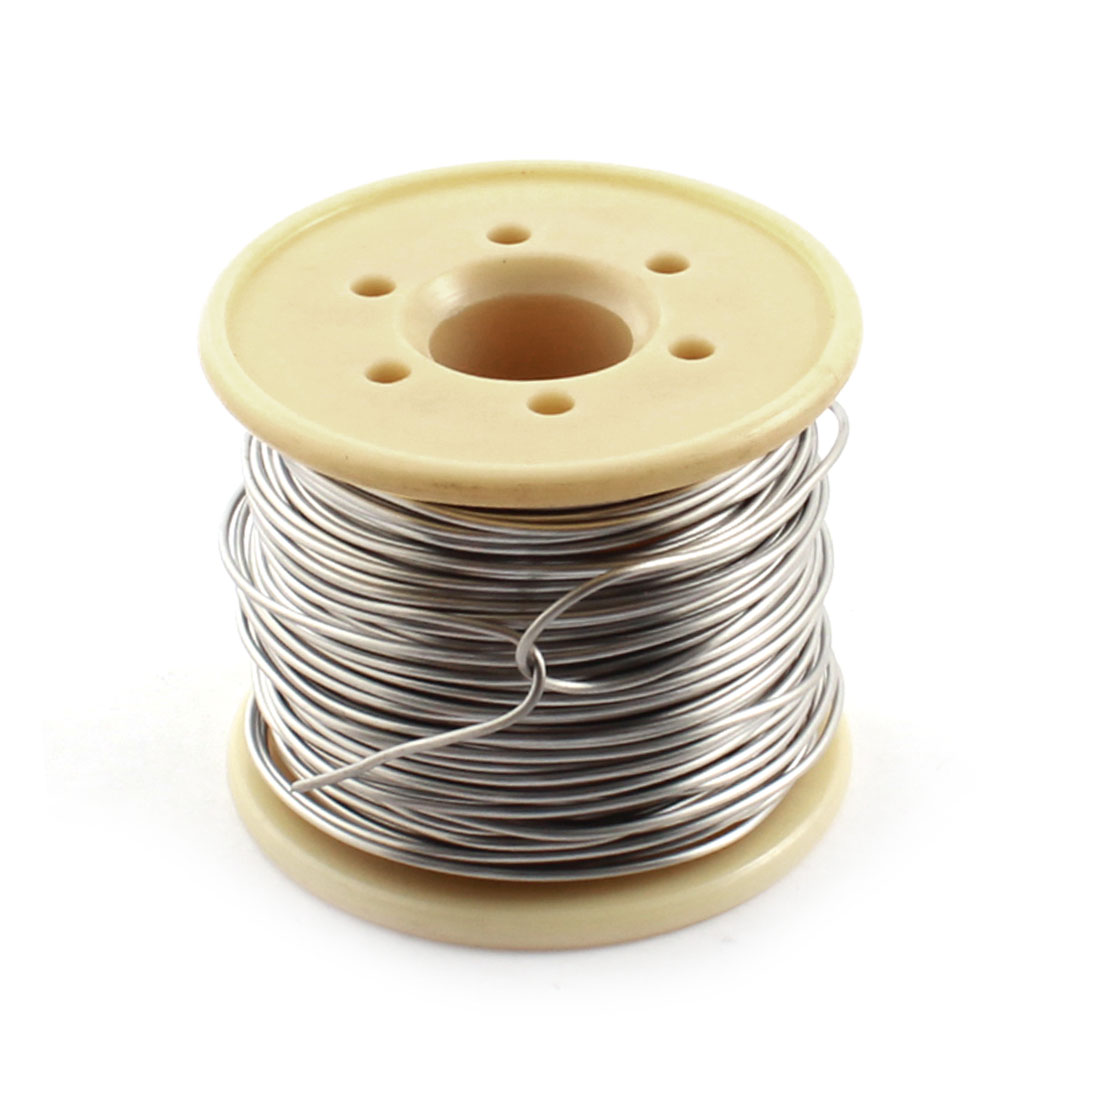 15Meter 50ft Long 1mm AWG18 1.388Ohm/M Nichrome Resistance Heating Coils Resistor Wire Cable